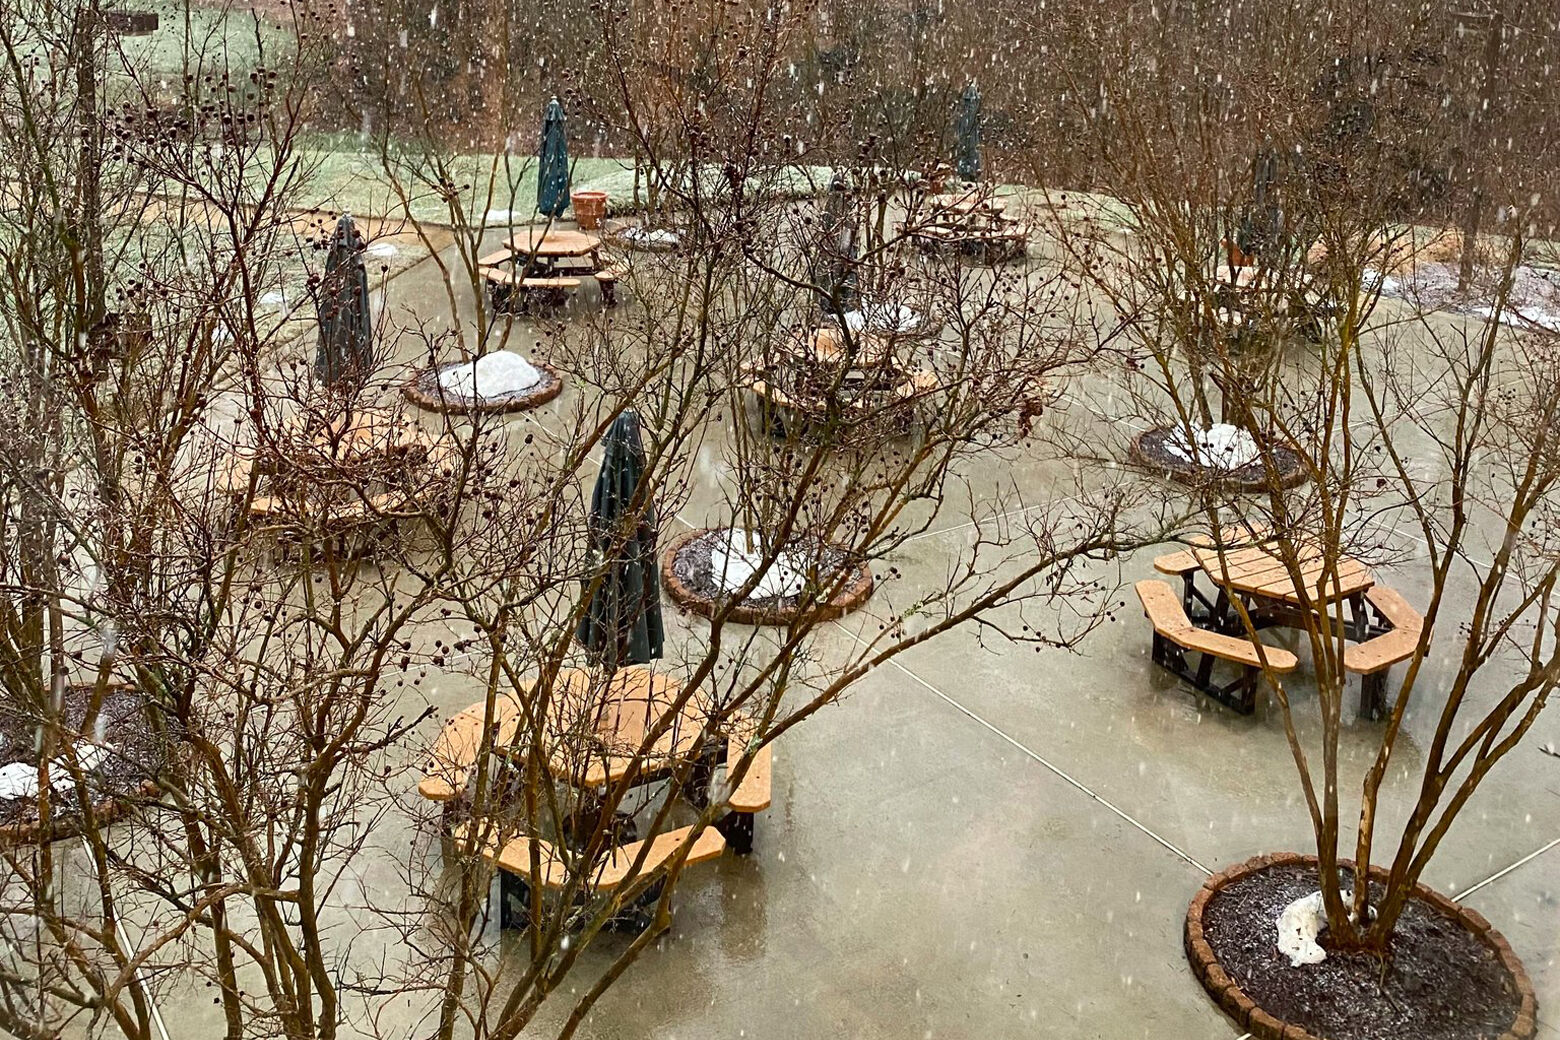 Patches of snow in courtyard.